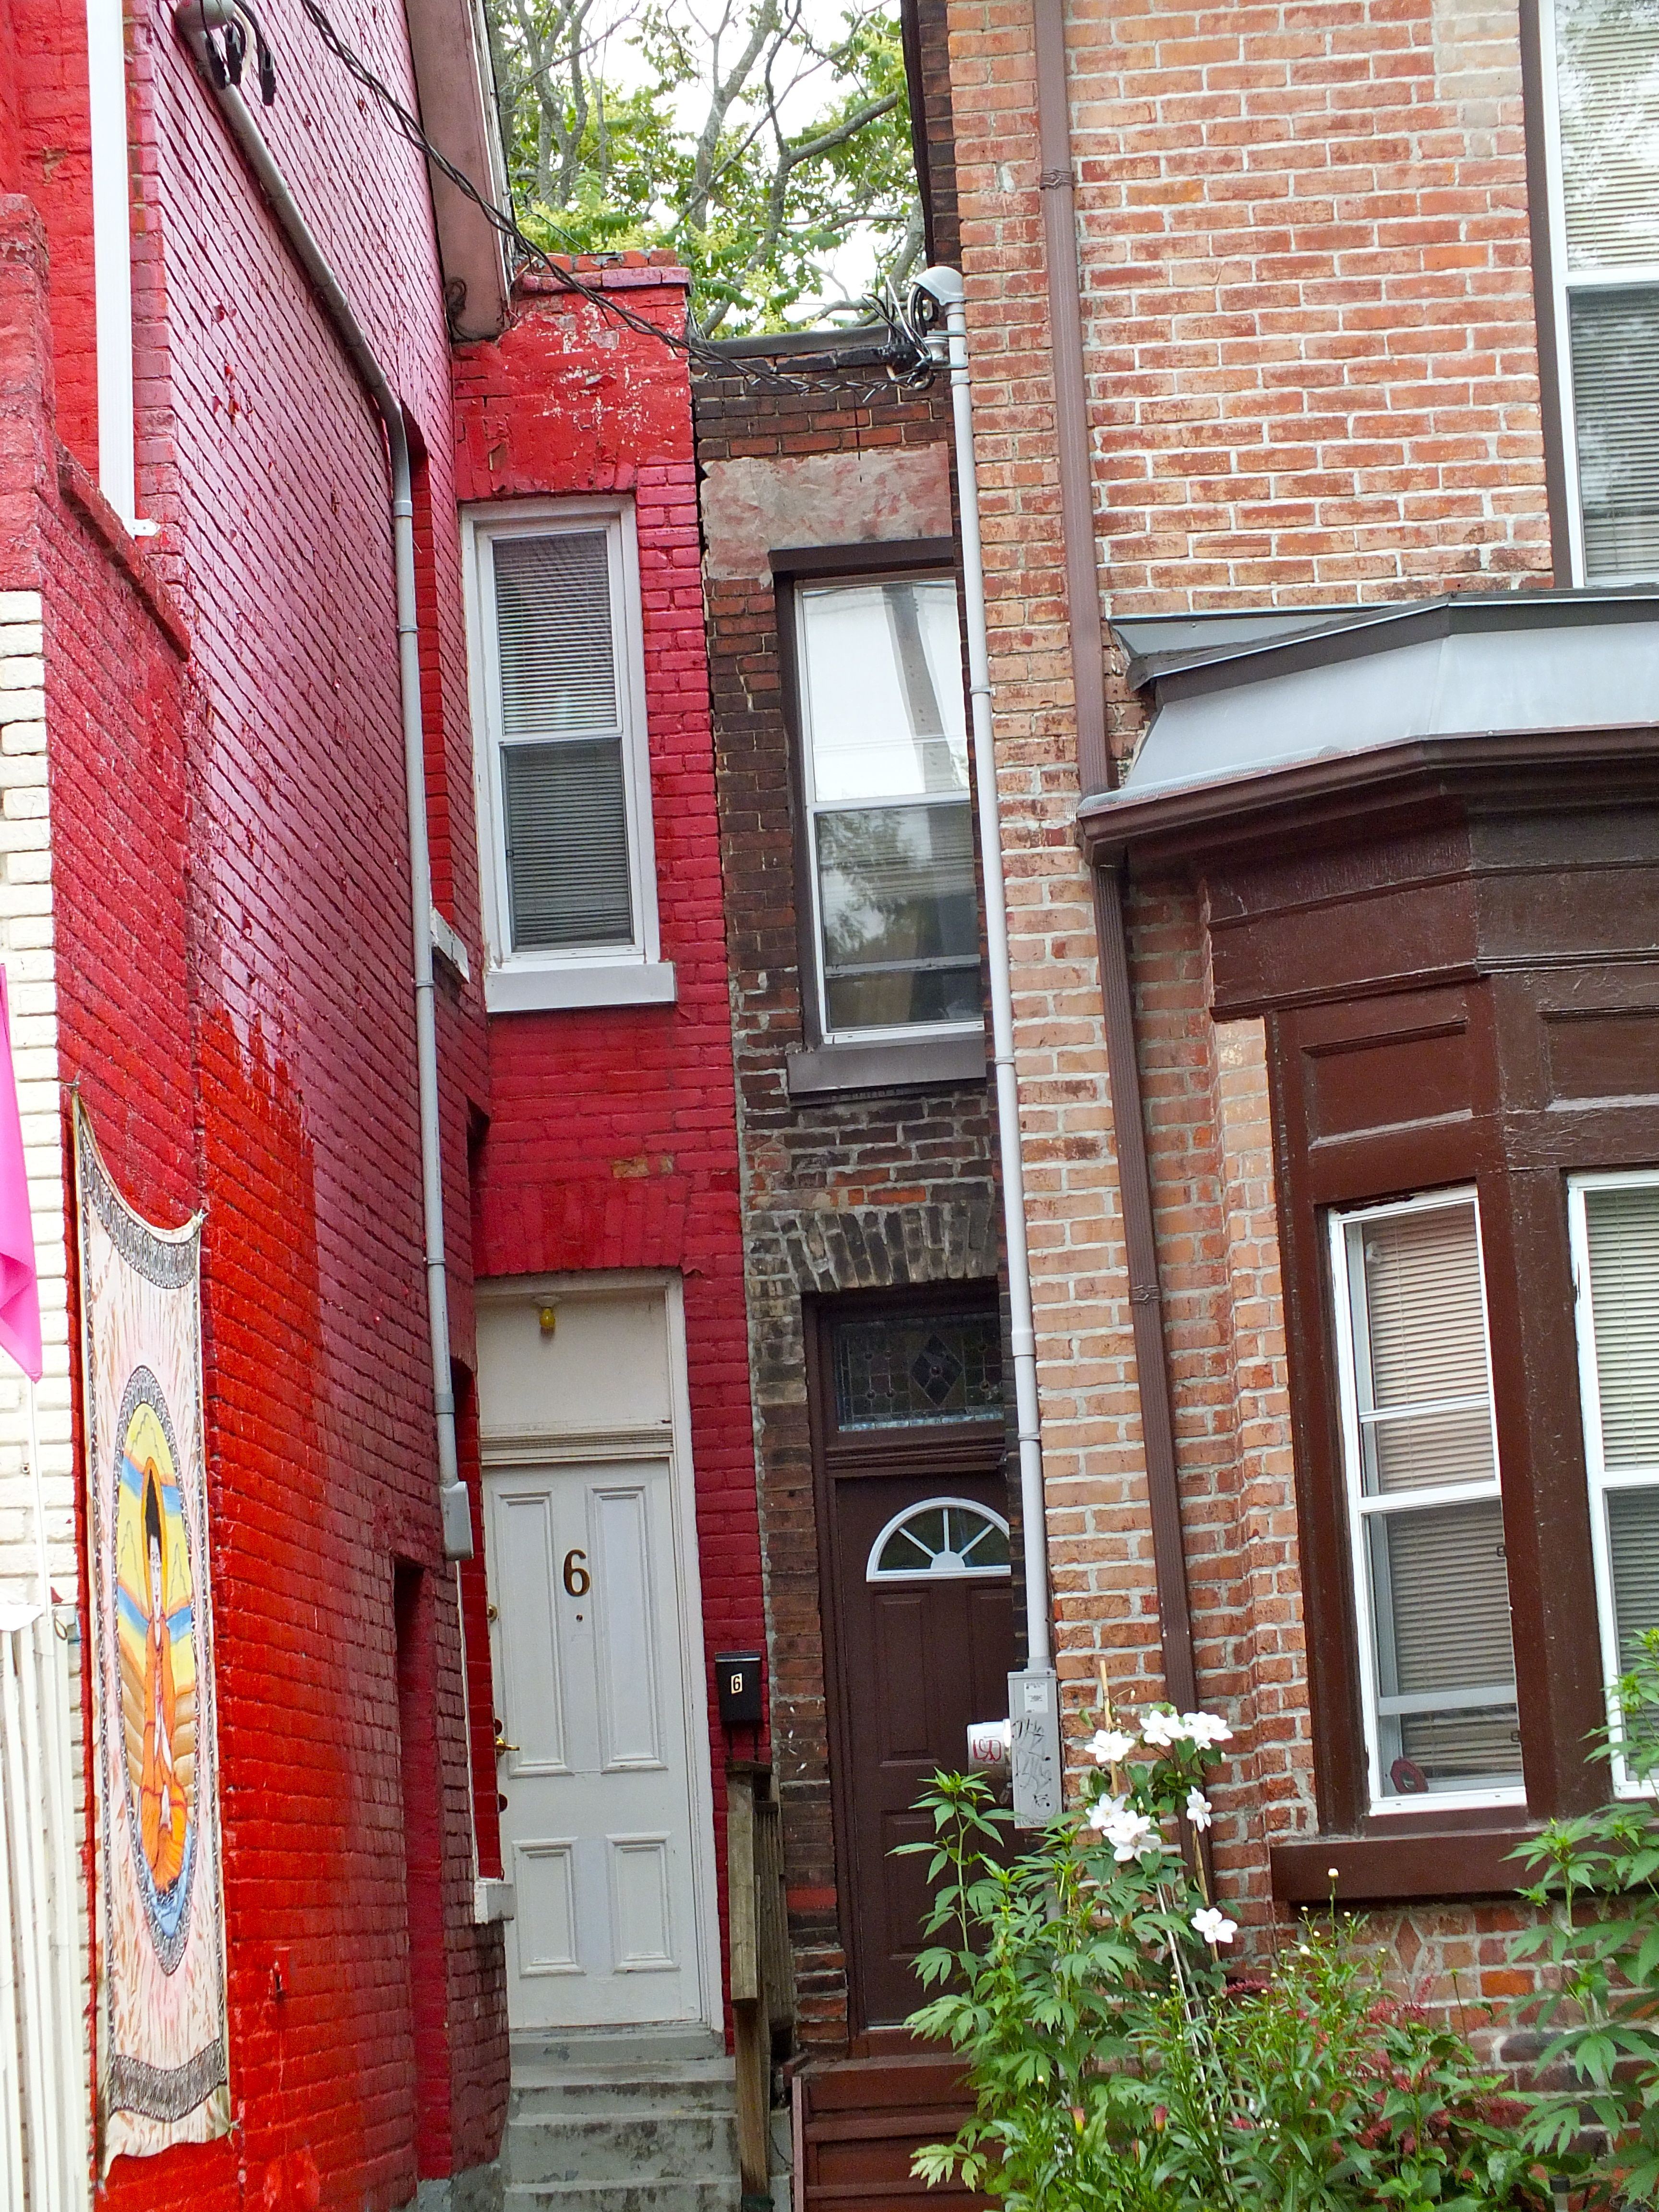 We saw Two very small houses in Kensington Market Toronto,Ontario, Canada June 27, 2013